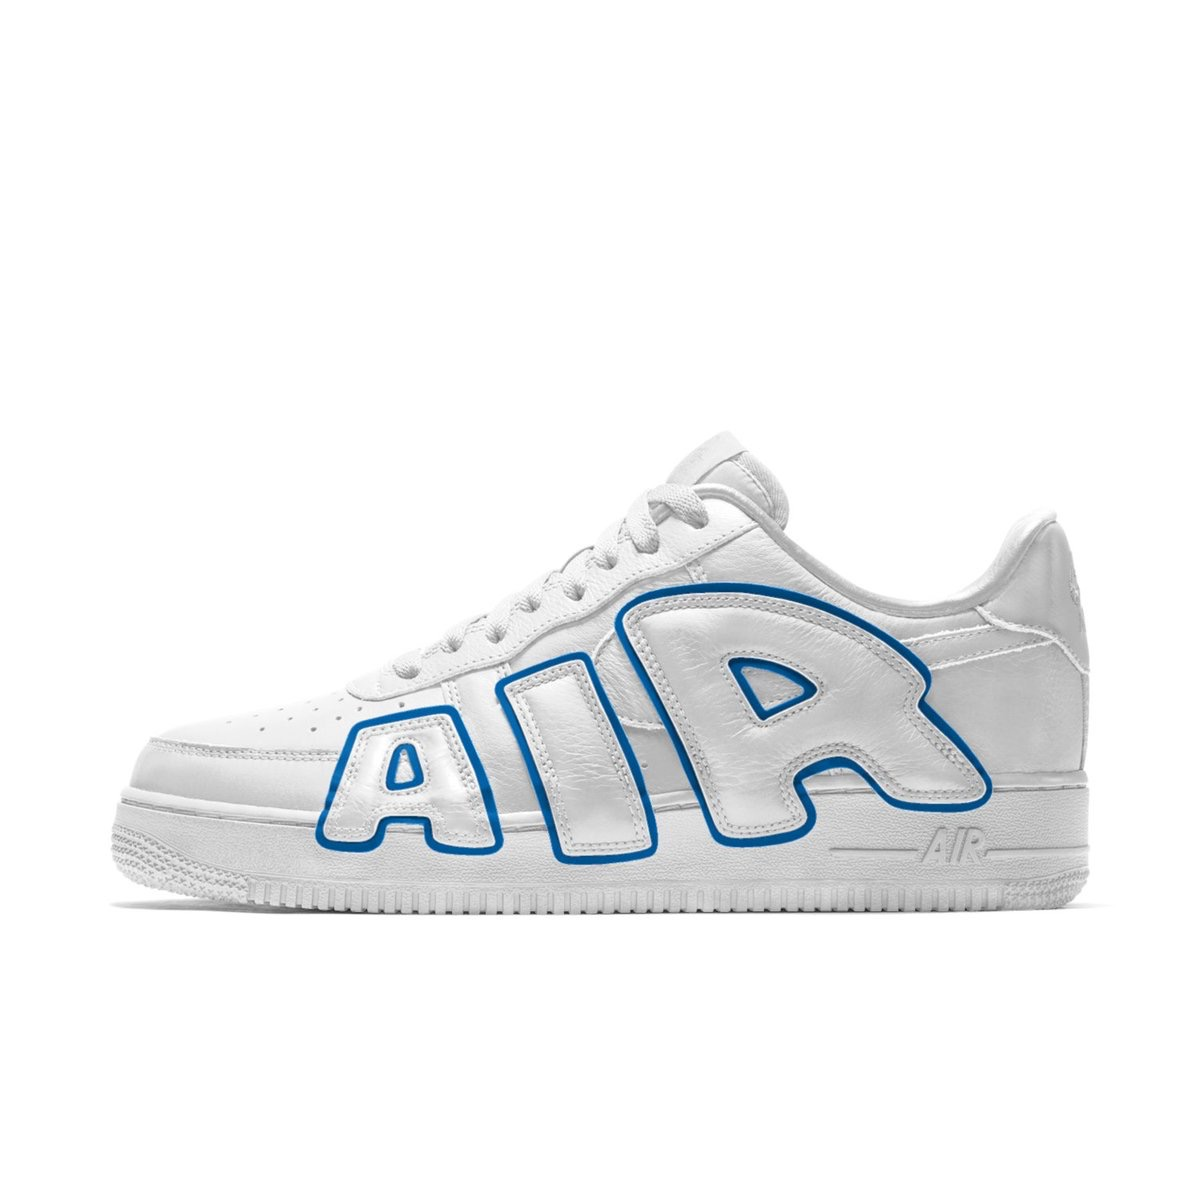 cactus-plant-flea-market-nike-air-force-1-low-release-20191021